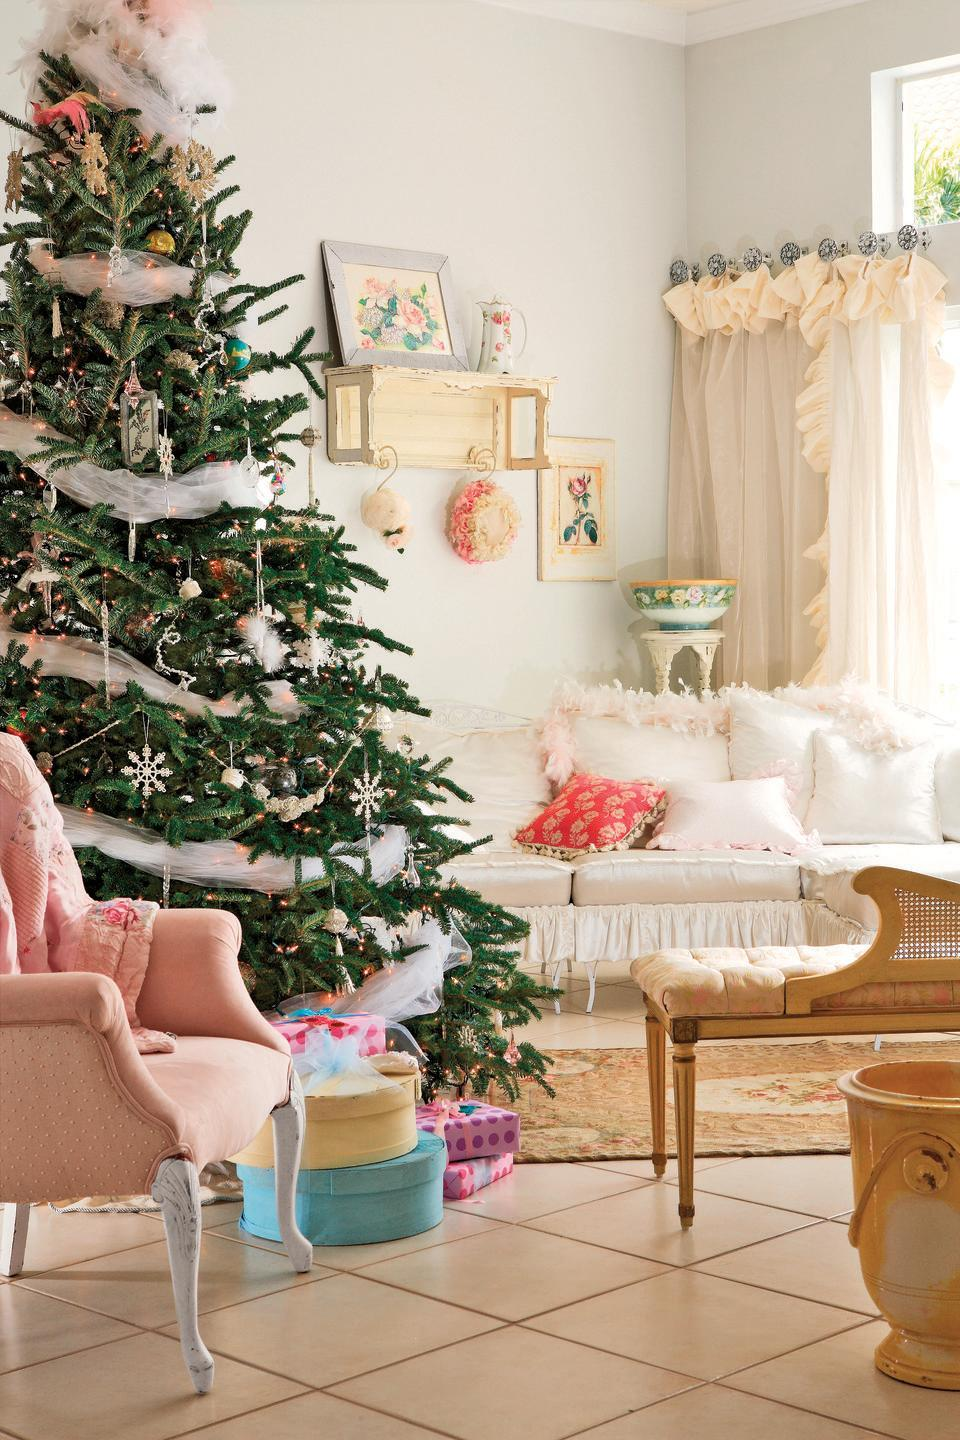 """<p>A wrap of shimmery mesh tulle ribbon gives your Christmas tree a flirty, feminine touch. The look pairs perfectly with beaded snowflakes and pink and blue glass ornaments. To get a similar feel without some of the pouf, use shimmery organza ribbon in a two or three-inch width. </p><p><a class=""""link rapid-noclick-resp"""" href=""""https://www.amazon.com/Shimmer-Tulle-Ribbon-Rolls-Glimmer/dp/B018672YNO/ref=sr_1_7?tag=syn-yahoo-20&ascsubtag=%5Bartid%7C10050.g.28703522%5Bsrc%7Cyahoo-us"""" rel=""""nofollow noopener"""" target=""""_blank"""" data-ylk=""""slk:SHOP TULLE RIBBON"""">SHOP TULLE RIBBON</a></p>"""